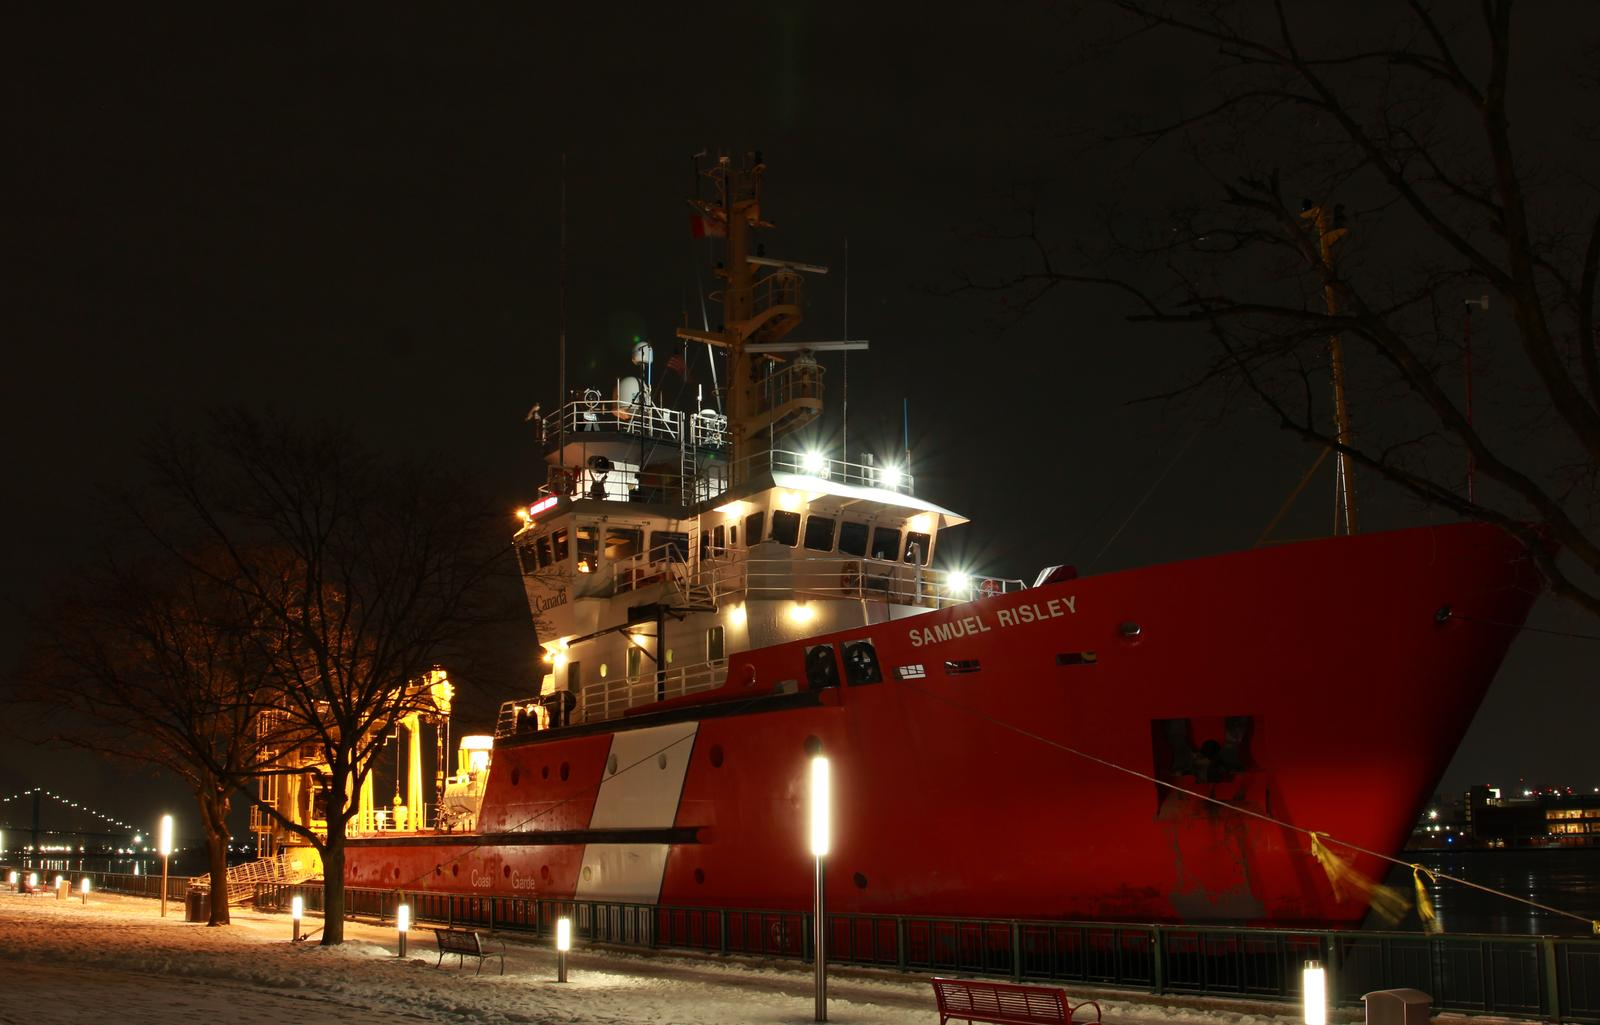 Operation Coal Shovel(Winter 2021) with CCGS Griffon and CCGS Samuel Risley